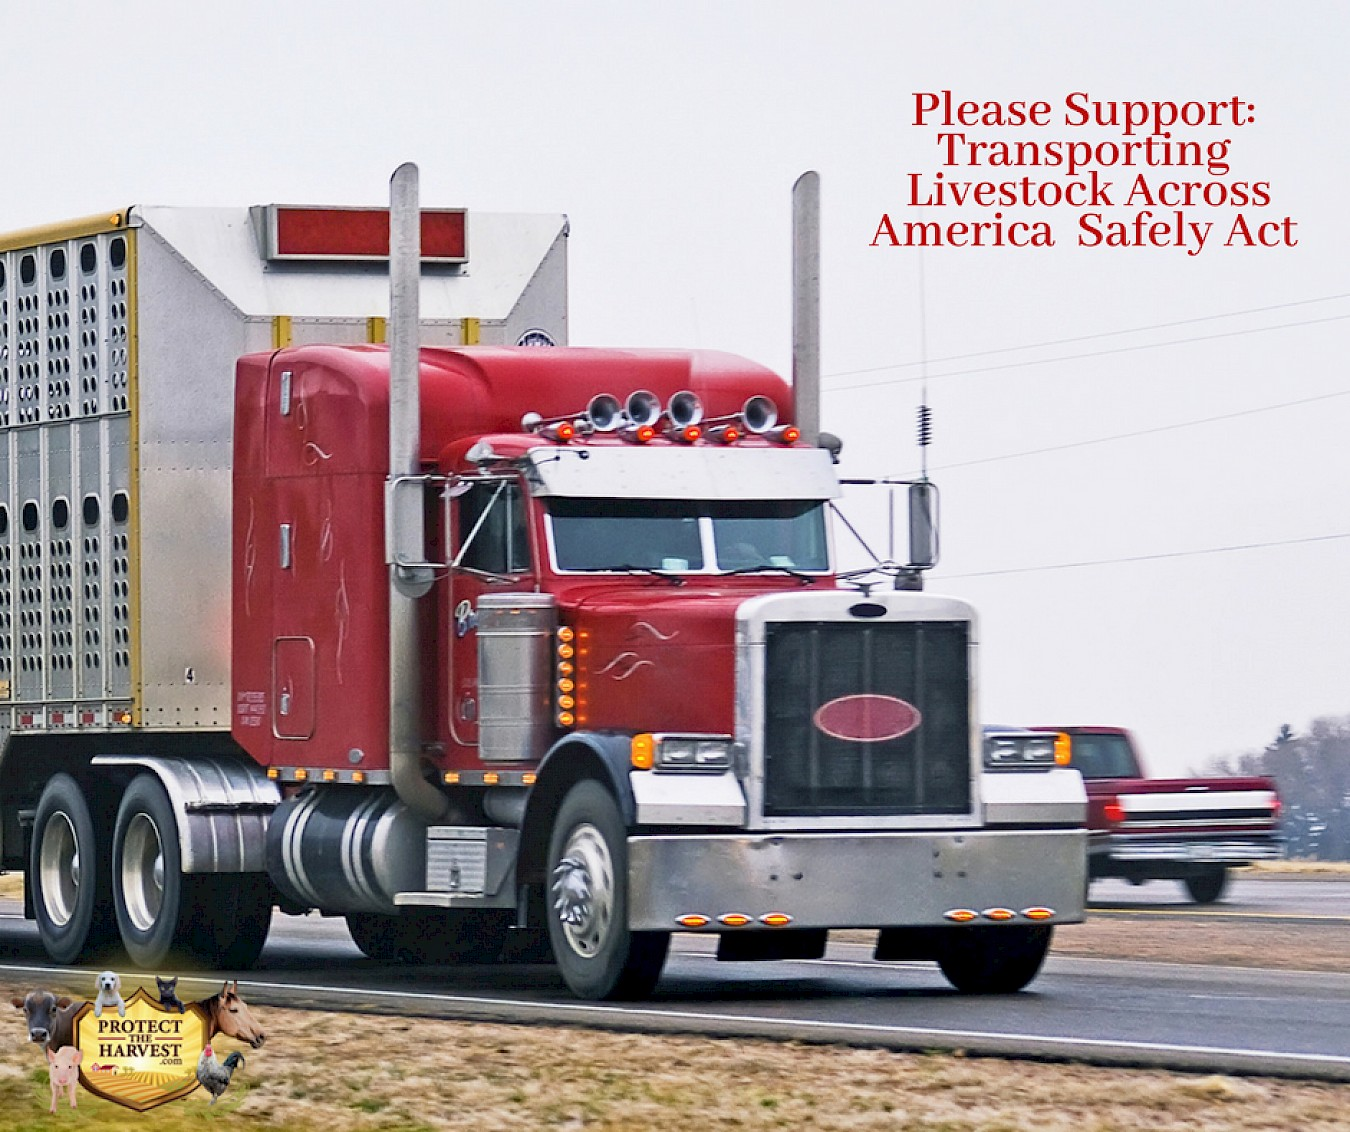 Please Support: Transporting Livestock Across America Safely Act